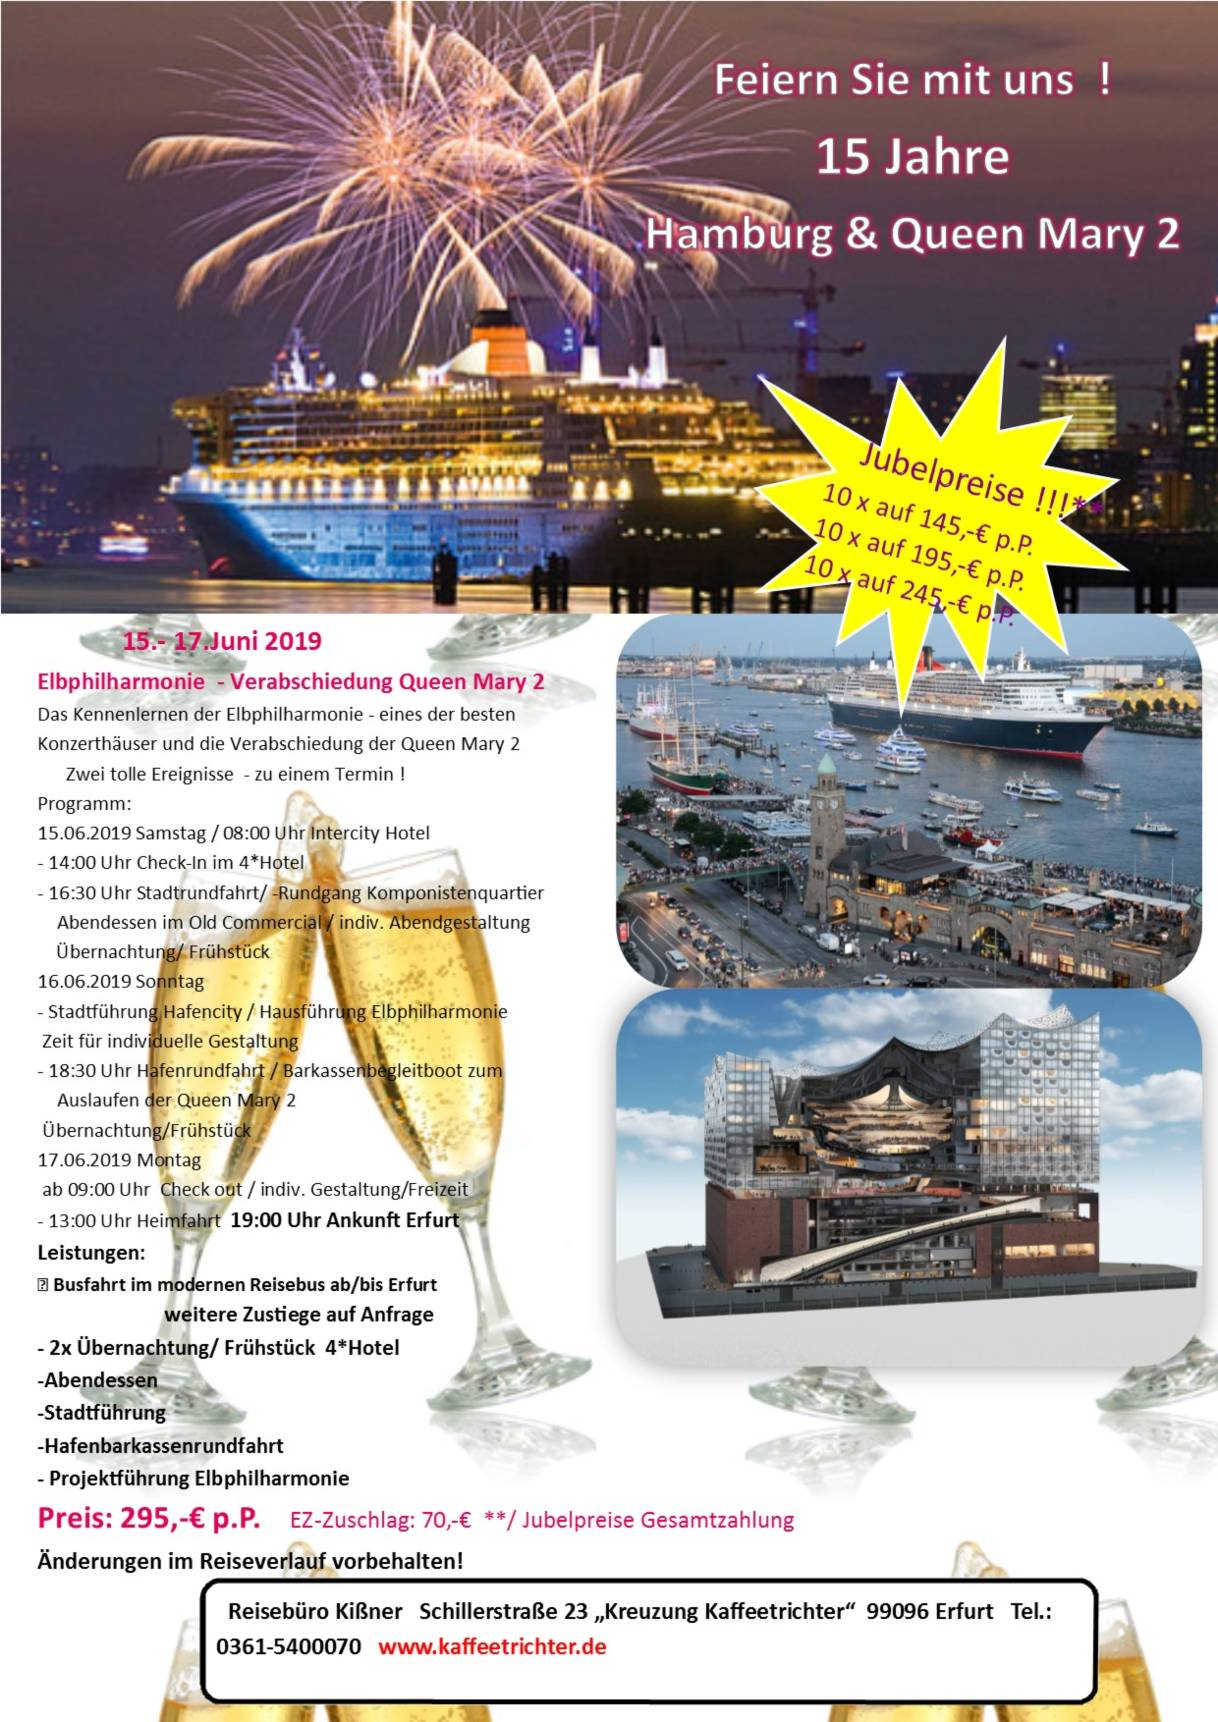 Hamburg und Queen Mary 2 Jubel